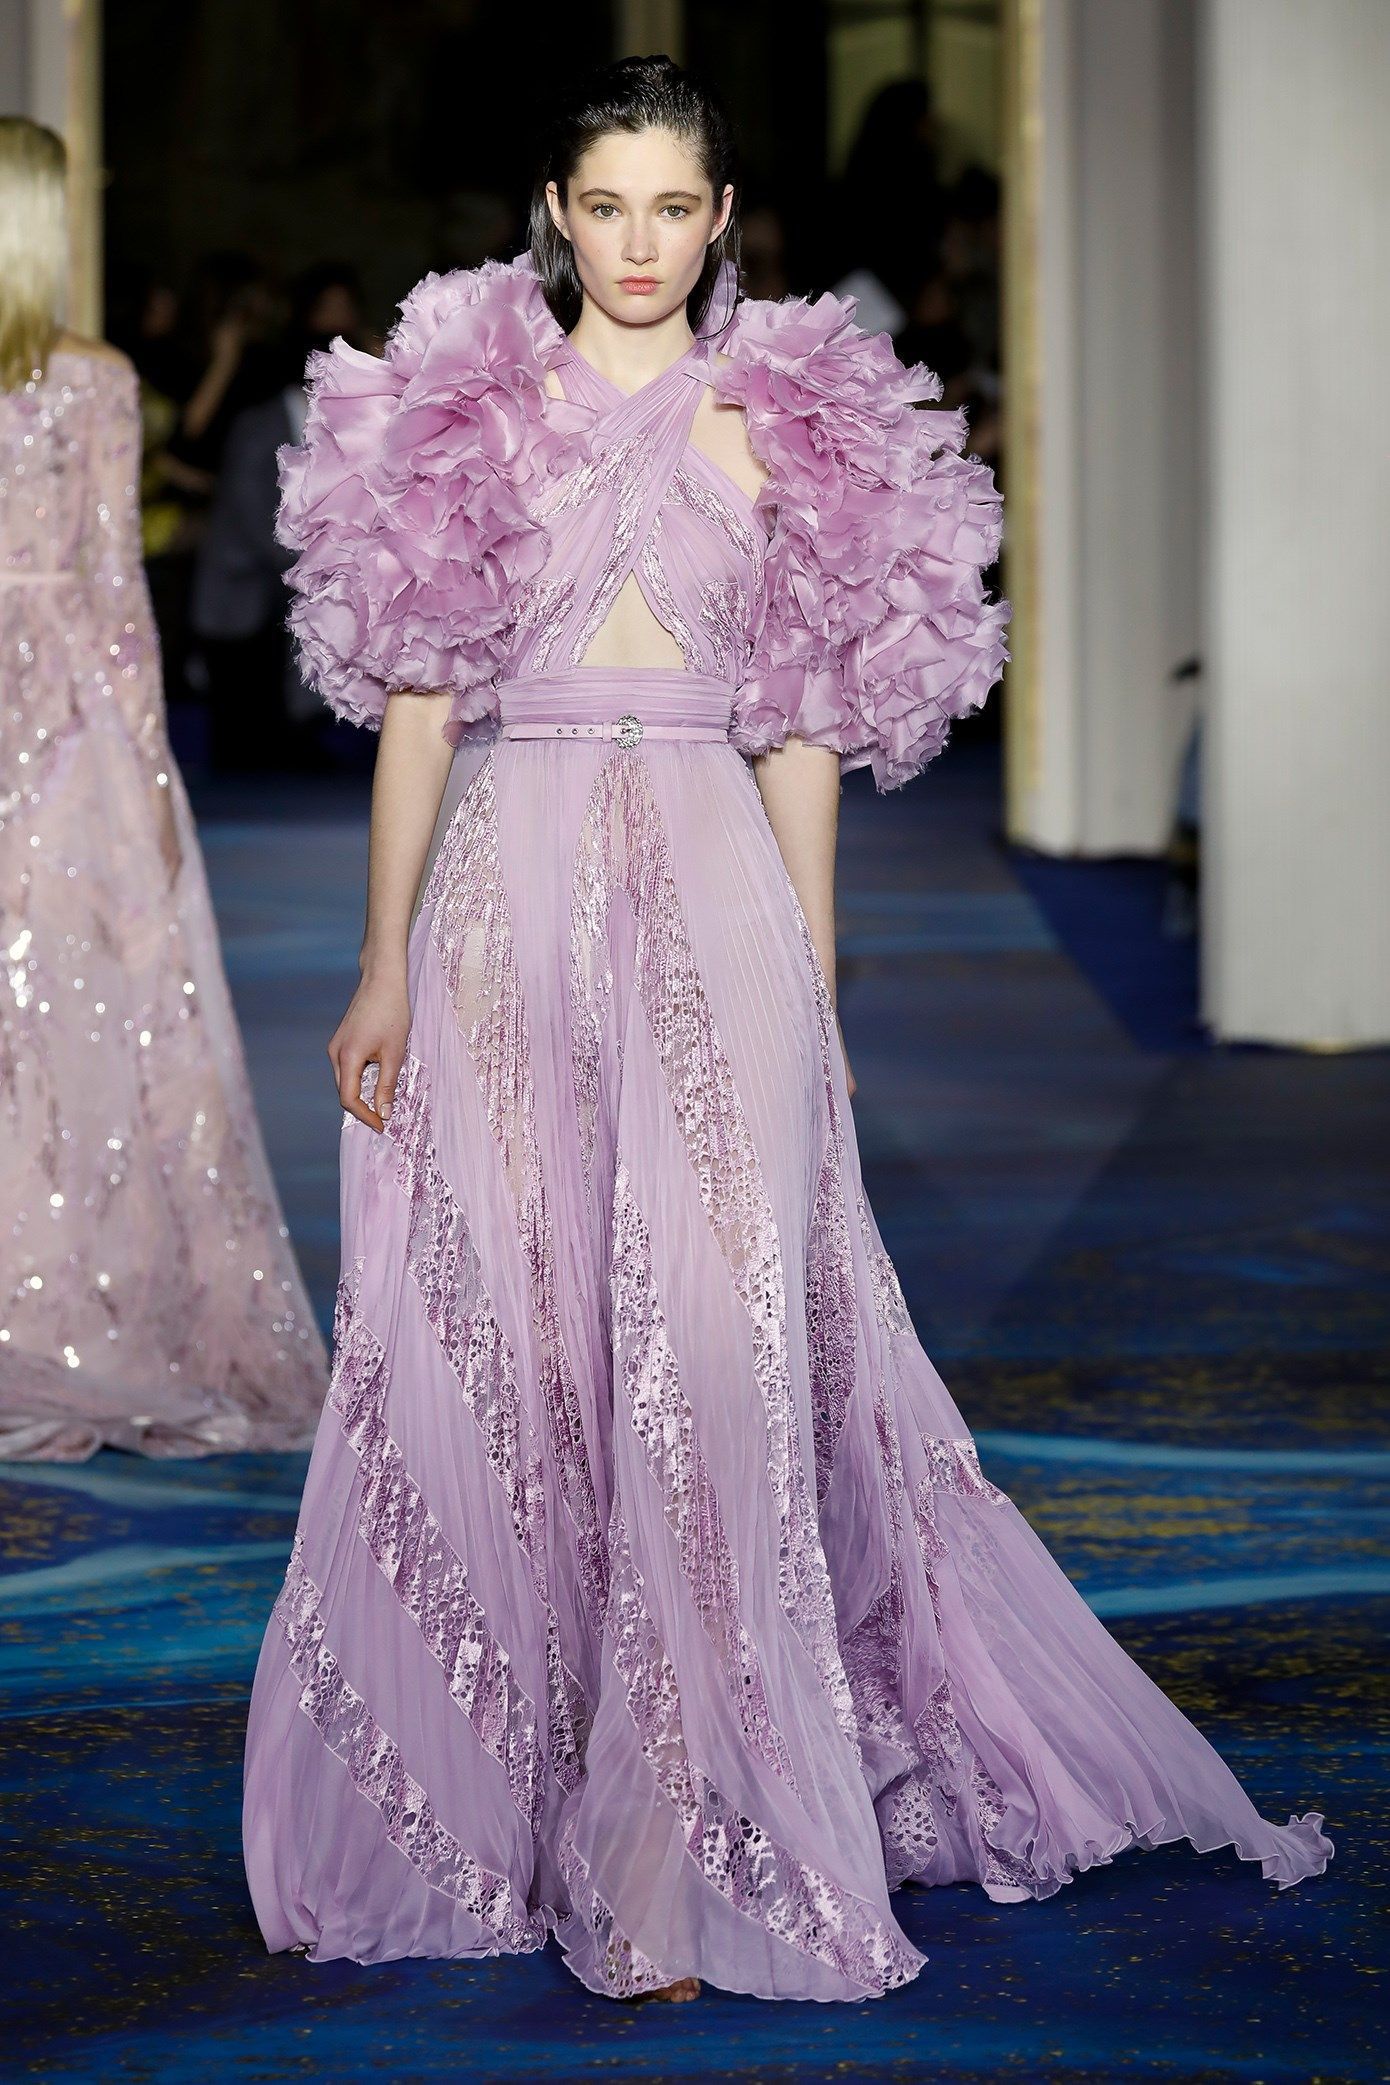 Couture Spring Summer 2019 Couture dresses, Prom dress